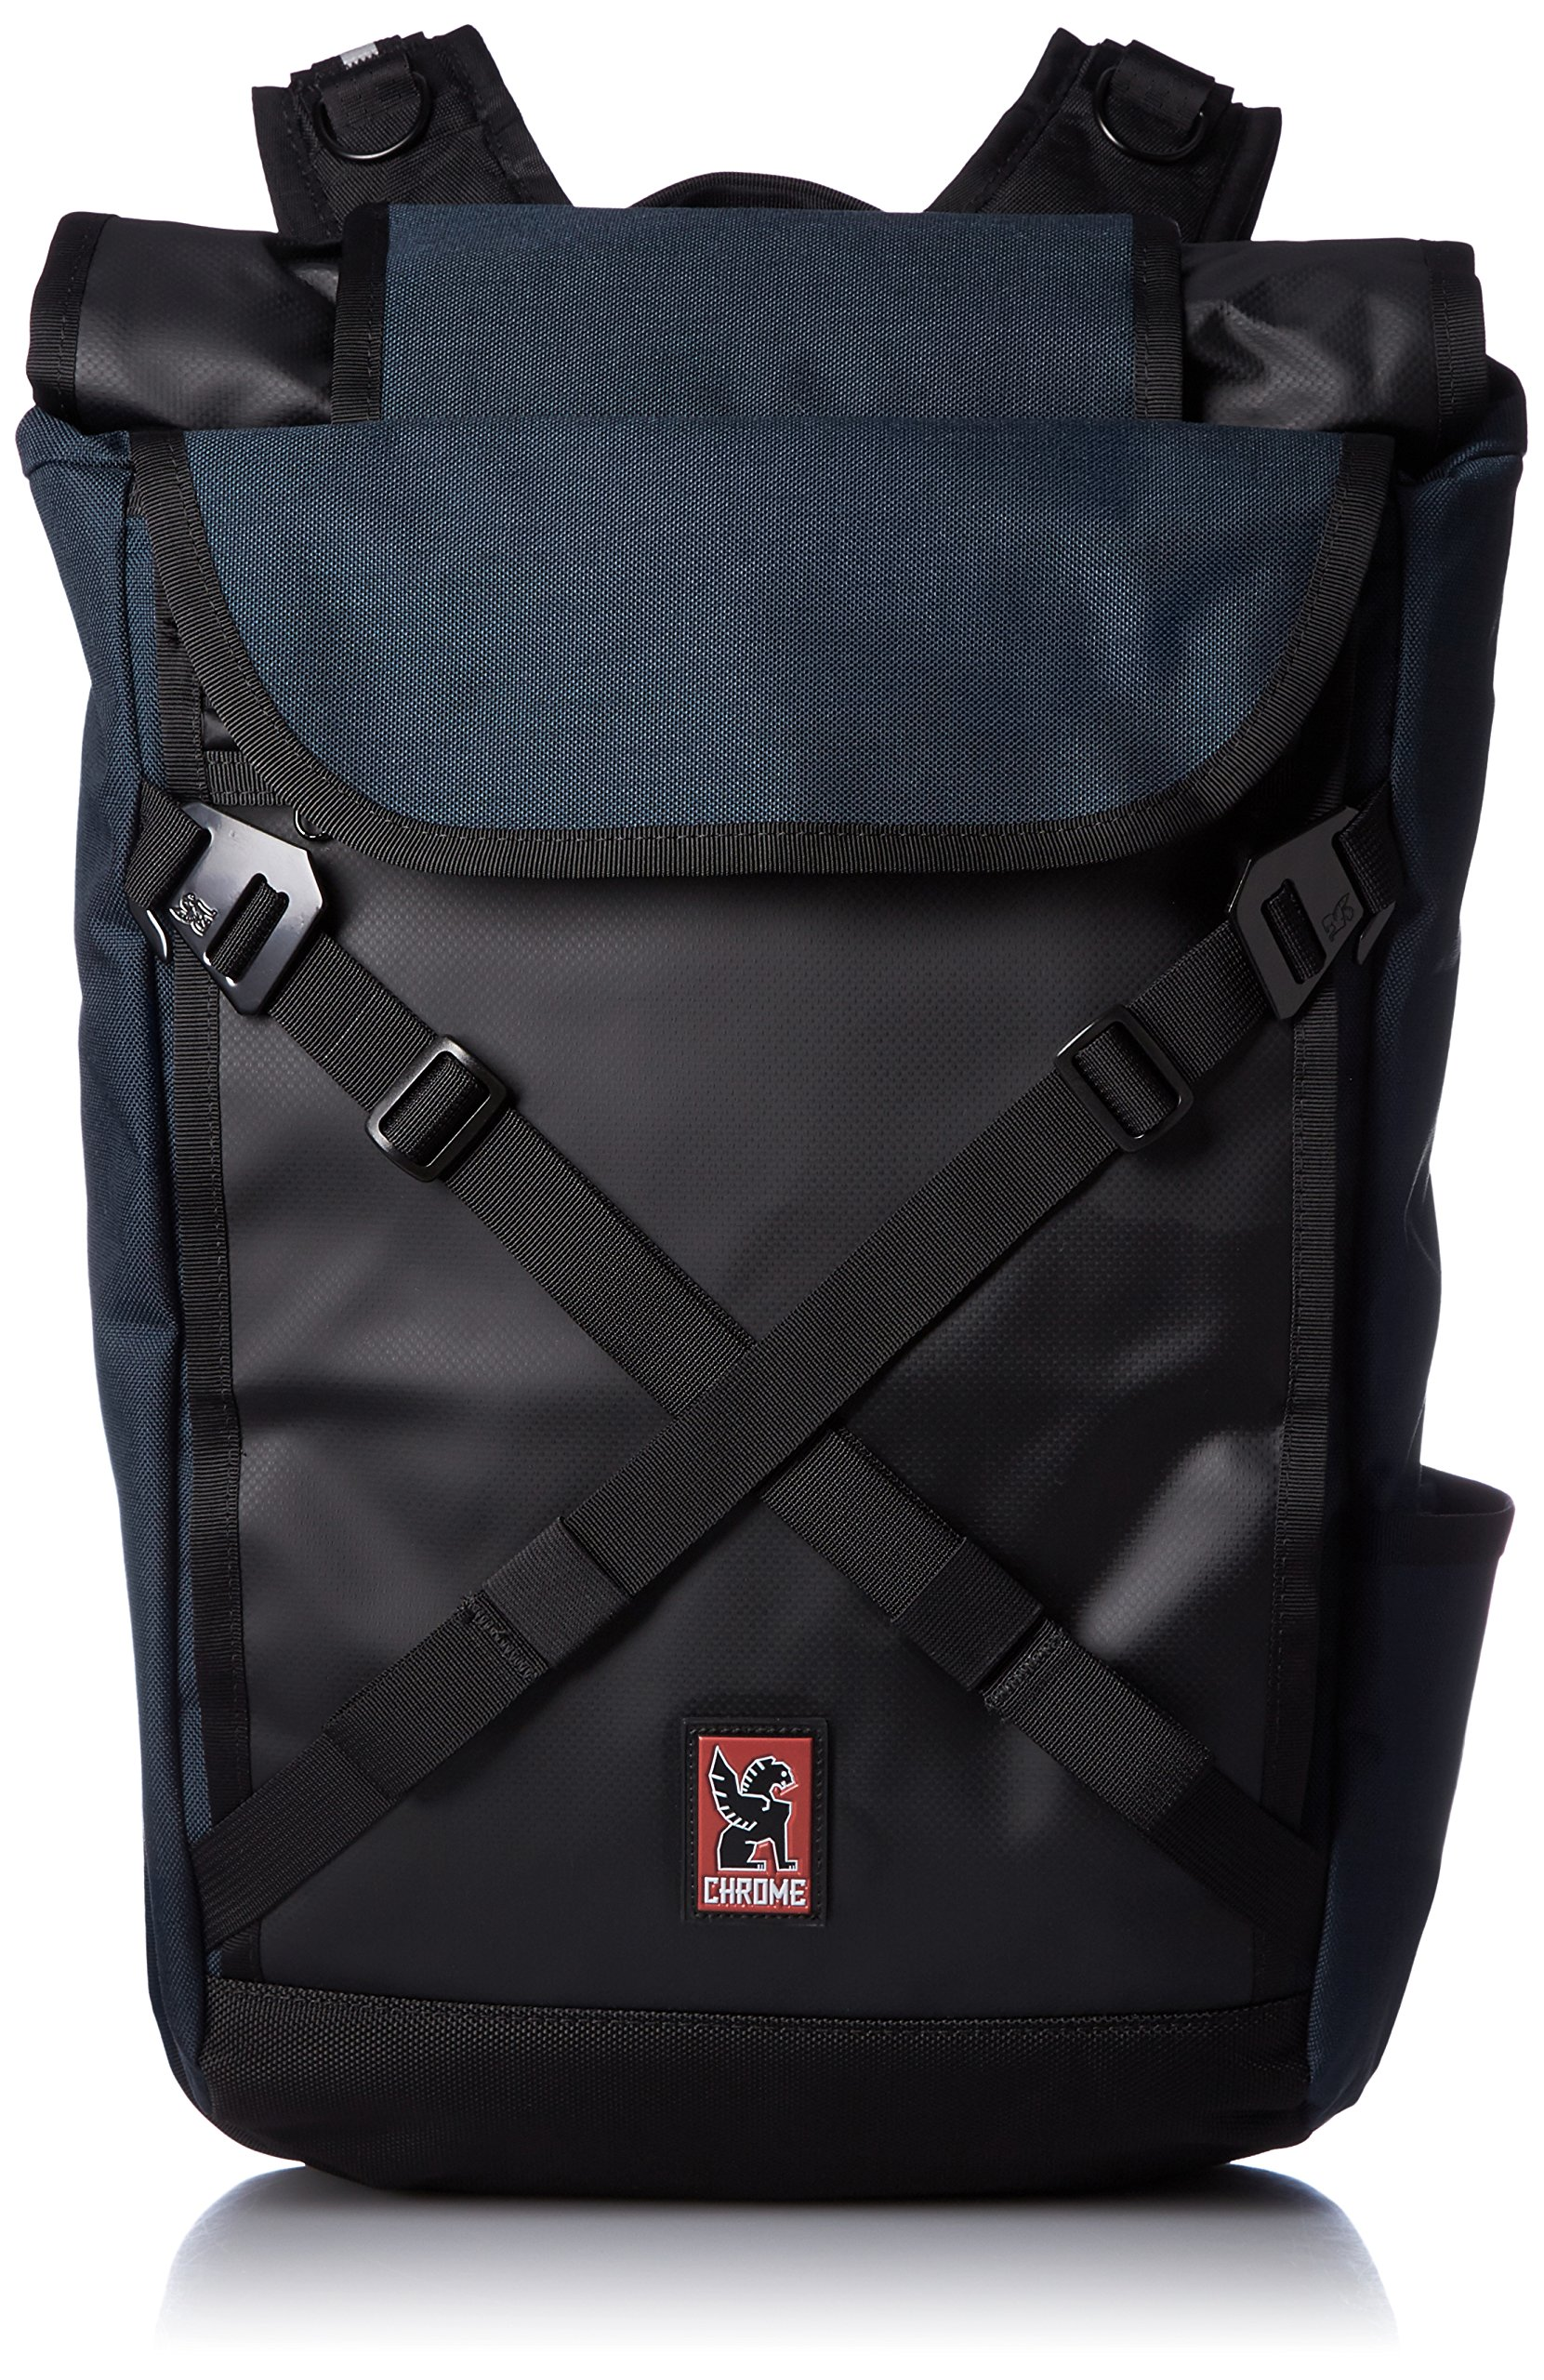 Chrome BG-190-IN Indigo/Black One Size Bravo 2.0 Backpack by Chrome